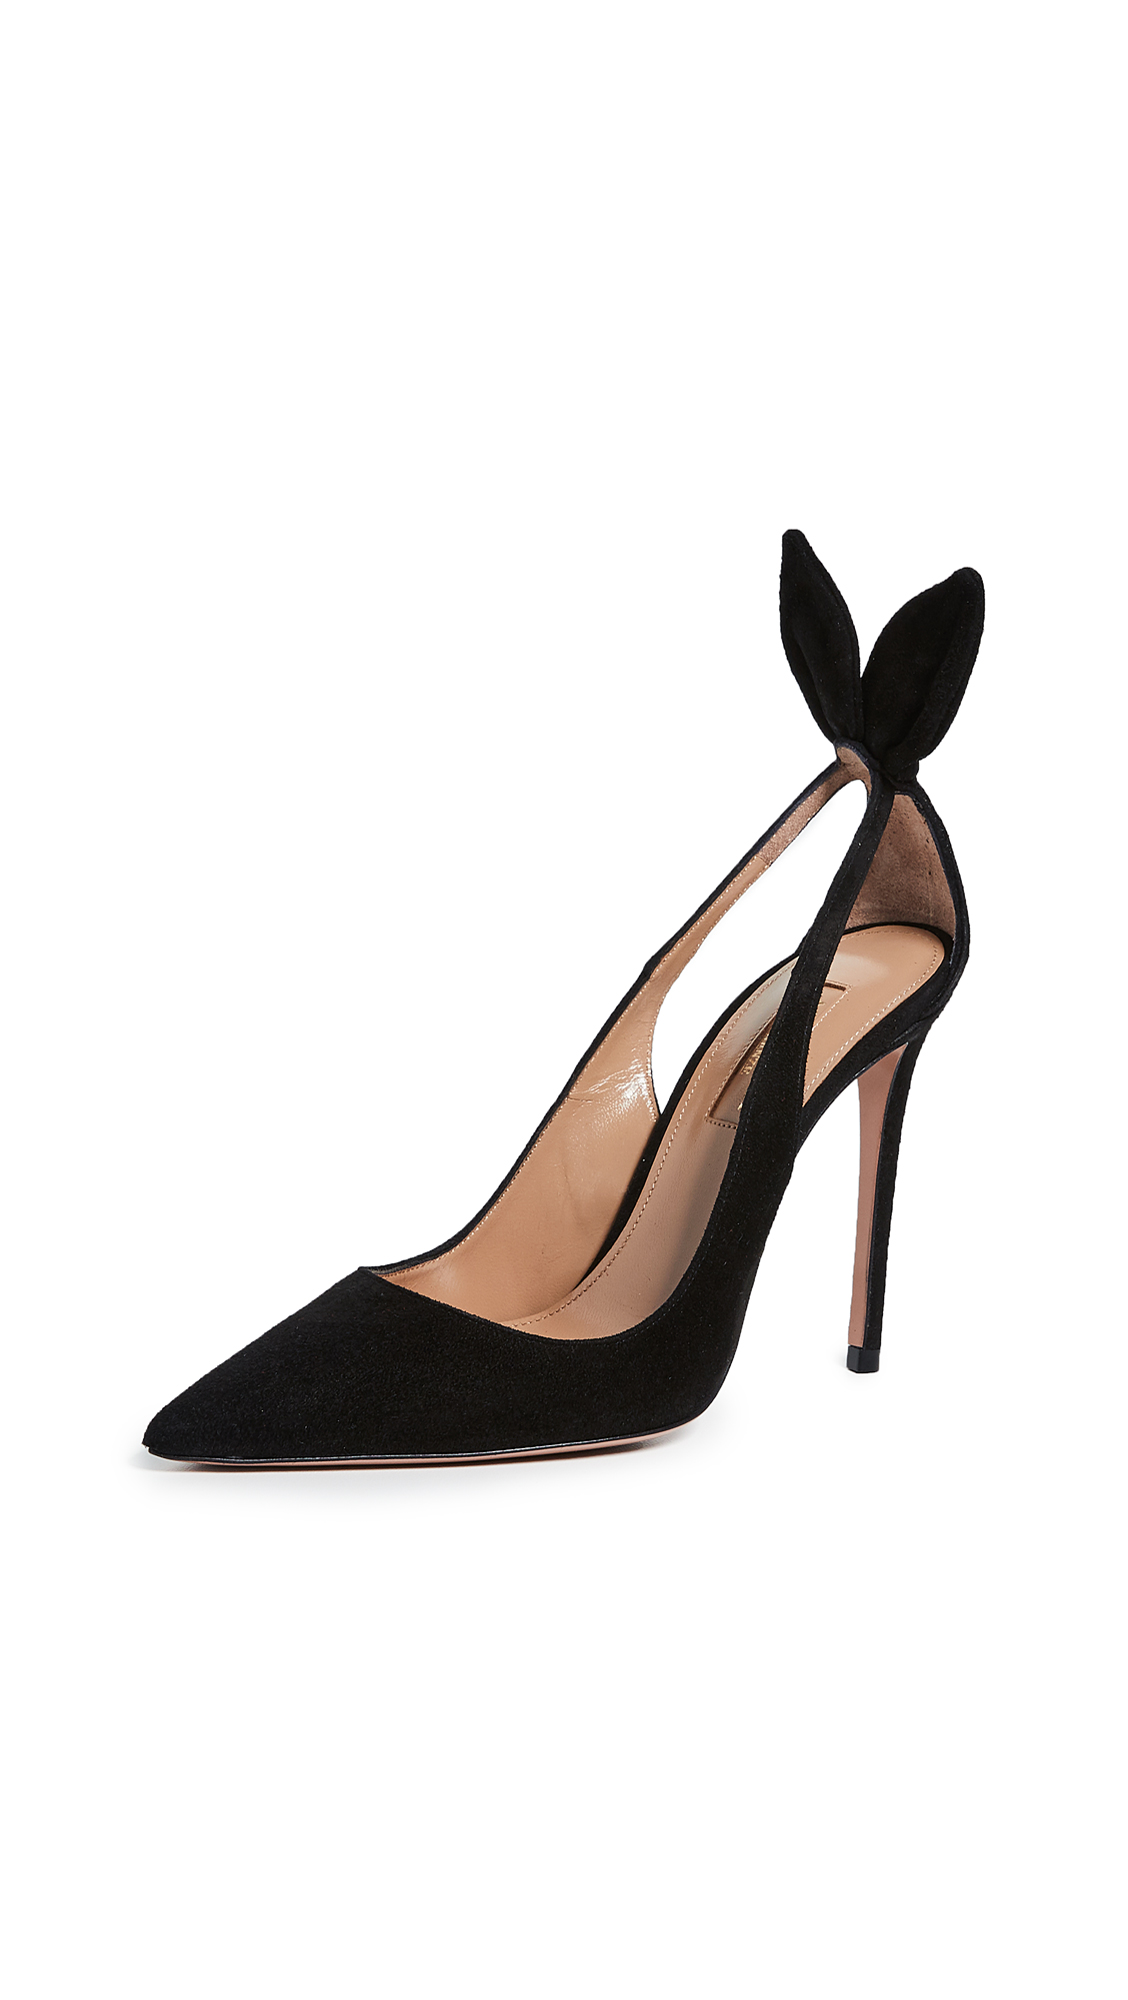 Buy Aquazzura Bow Tie Pumps 105mm online, shop Aquazzura